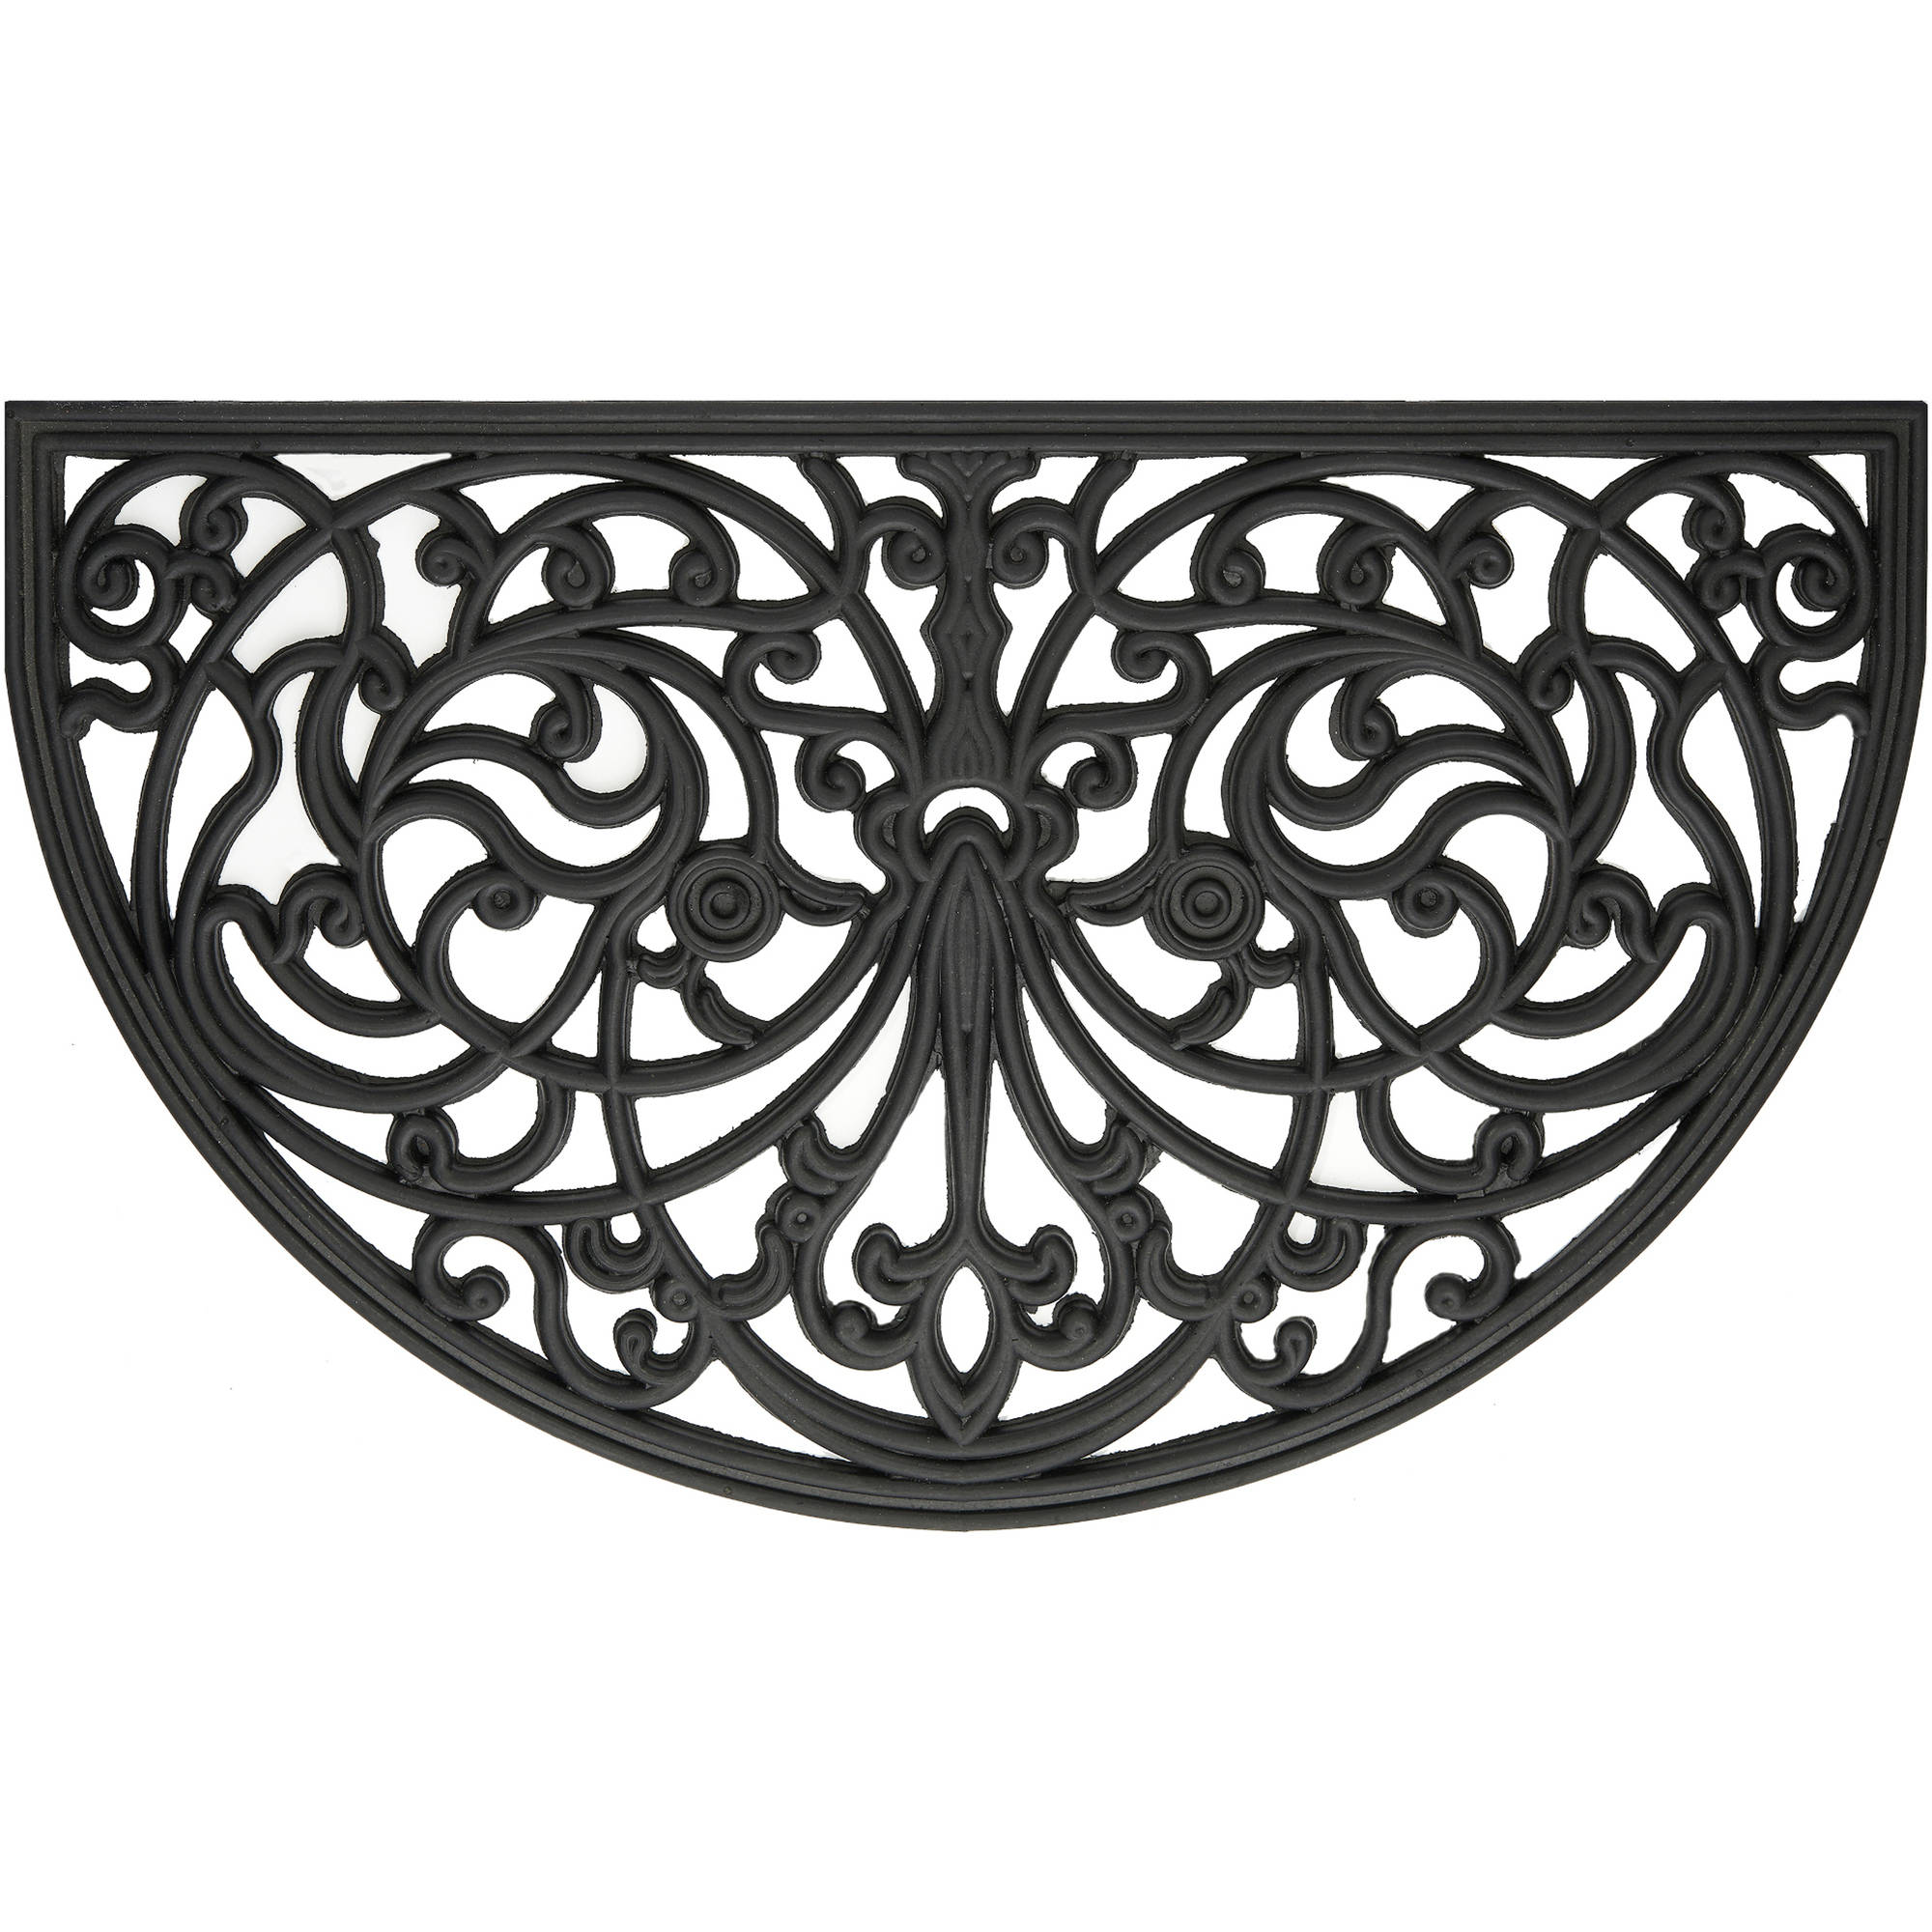 "Wrought Iron Rubber Doormat Ironworks, 18"" x 30"""